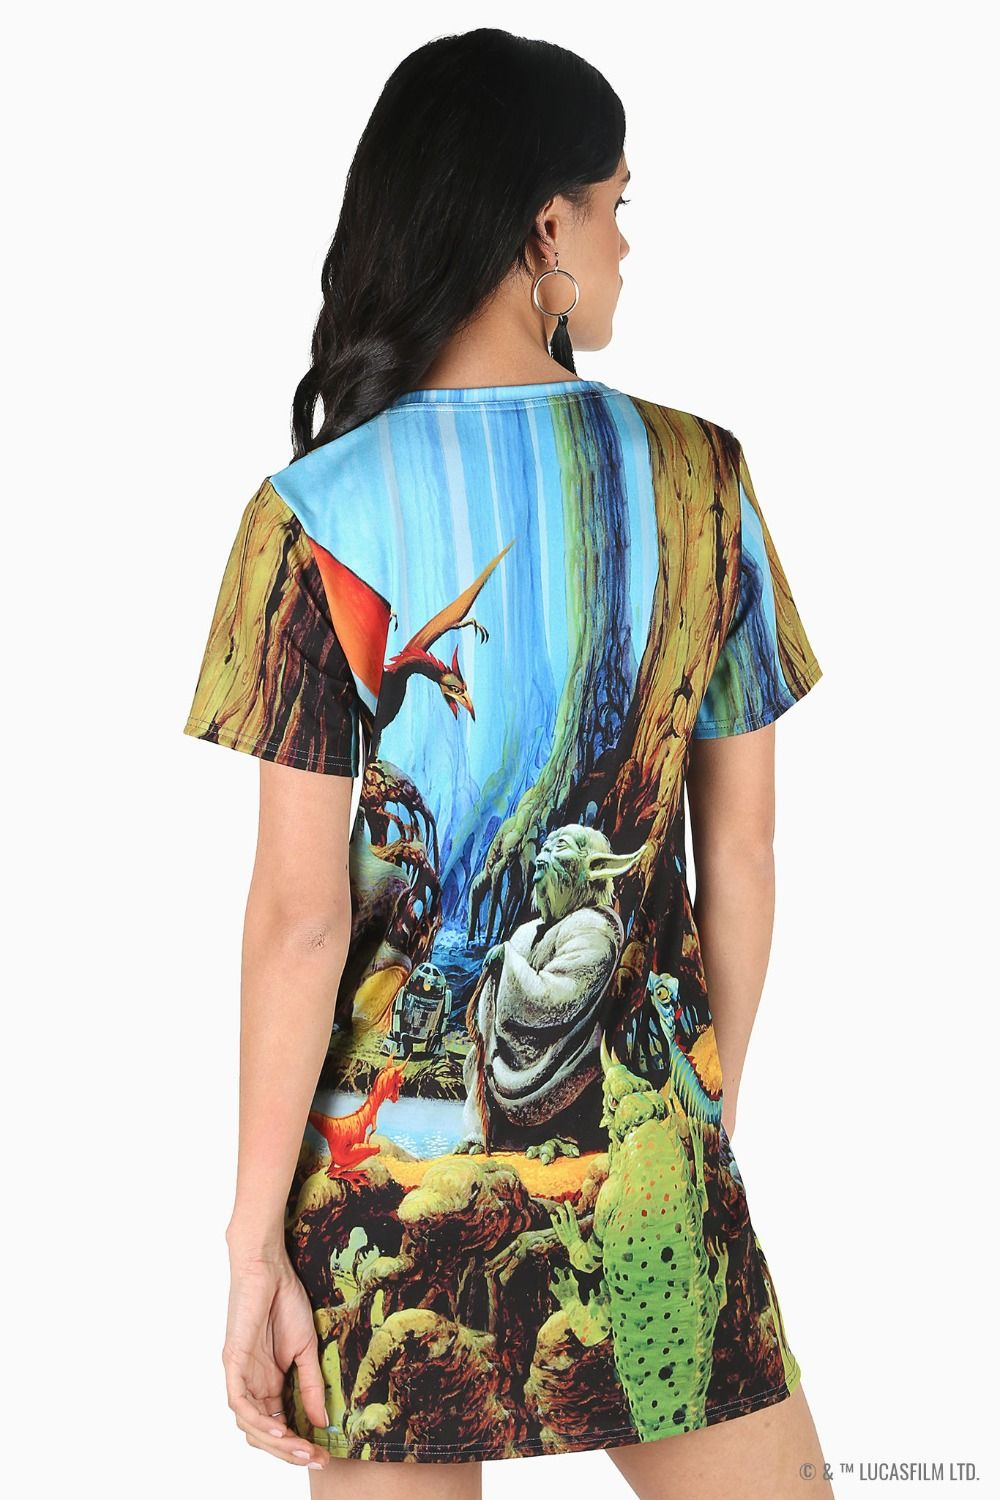 Black Milk Clothing x Star Wars Yoda On Dagobah Dress Tee